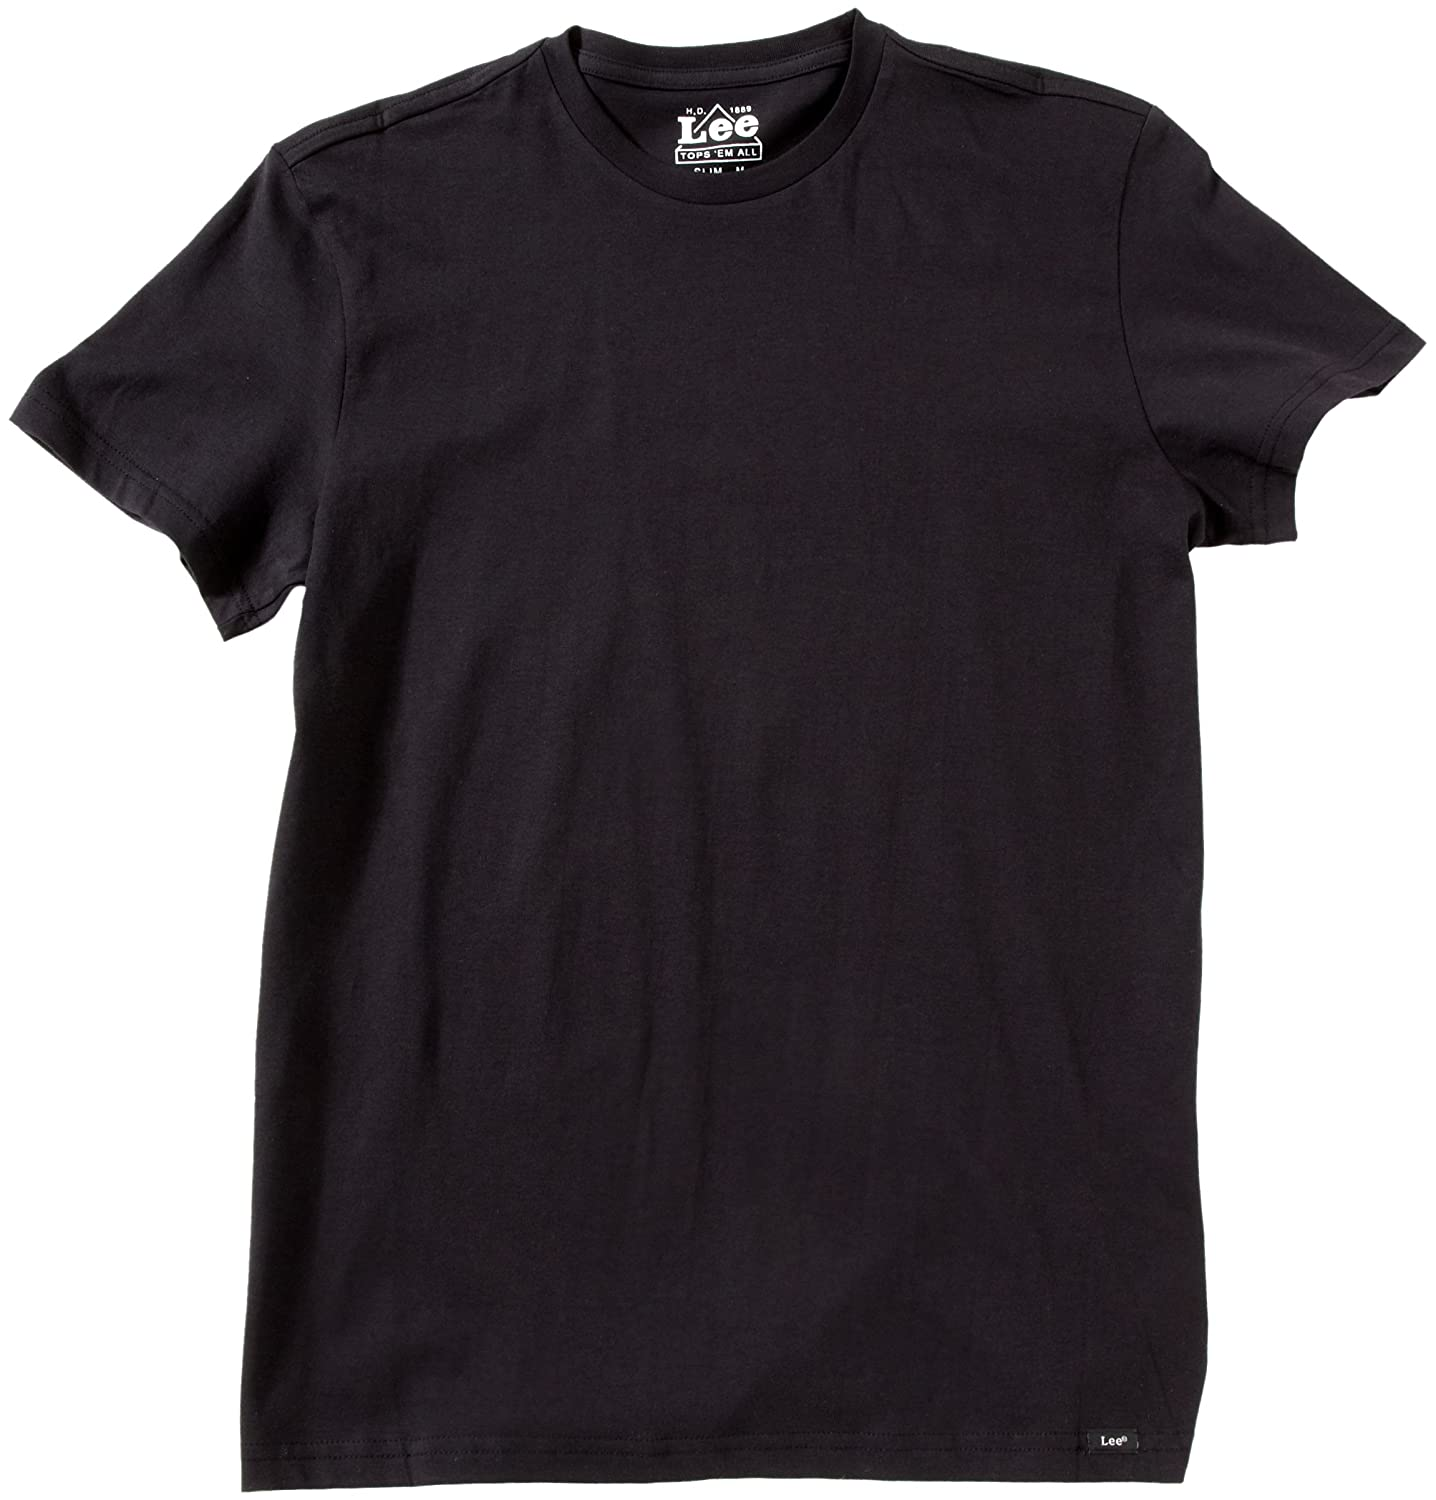 Lee Short Sleeves Twin Pack Black Men's T-Shirt